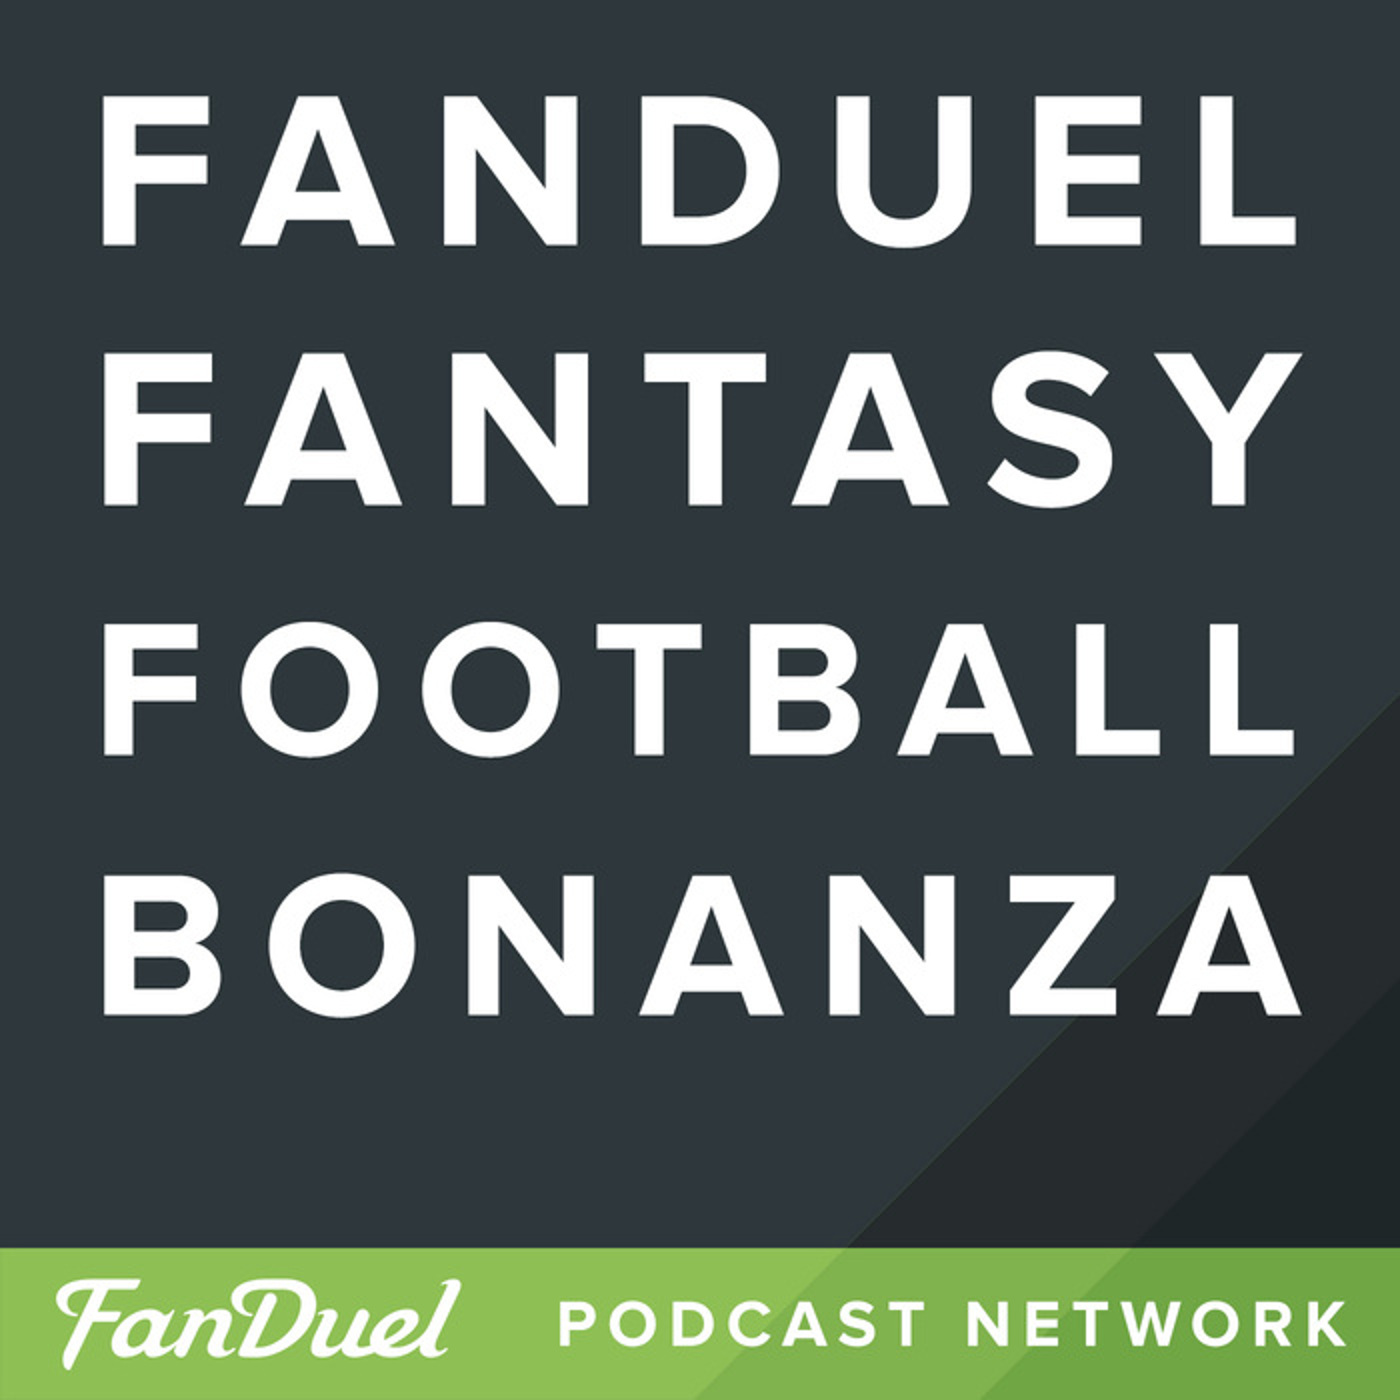 The FanDuel Fantasy Football Bonanza